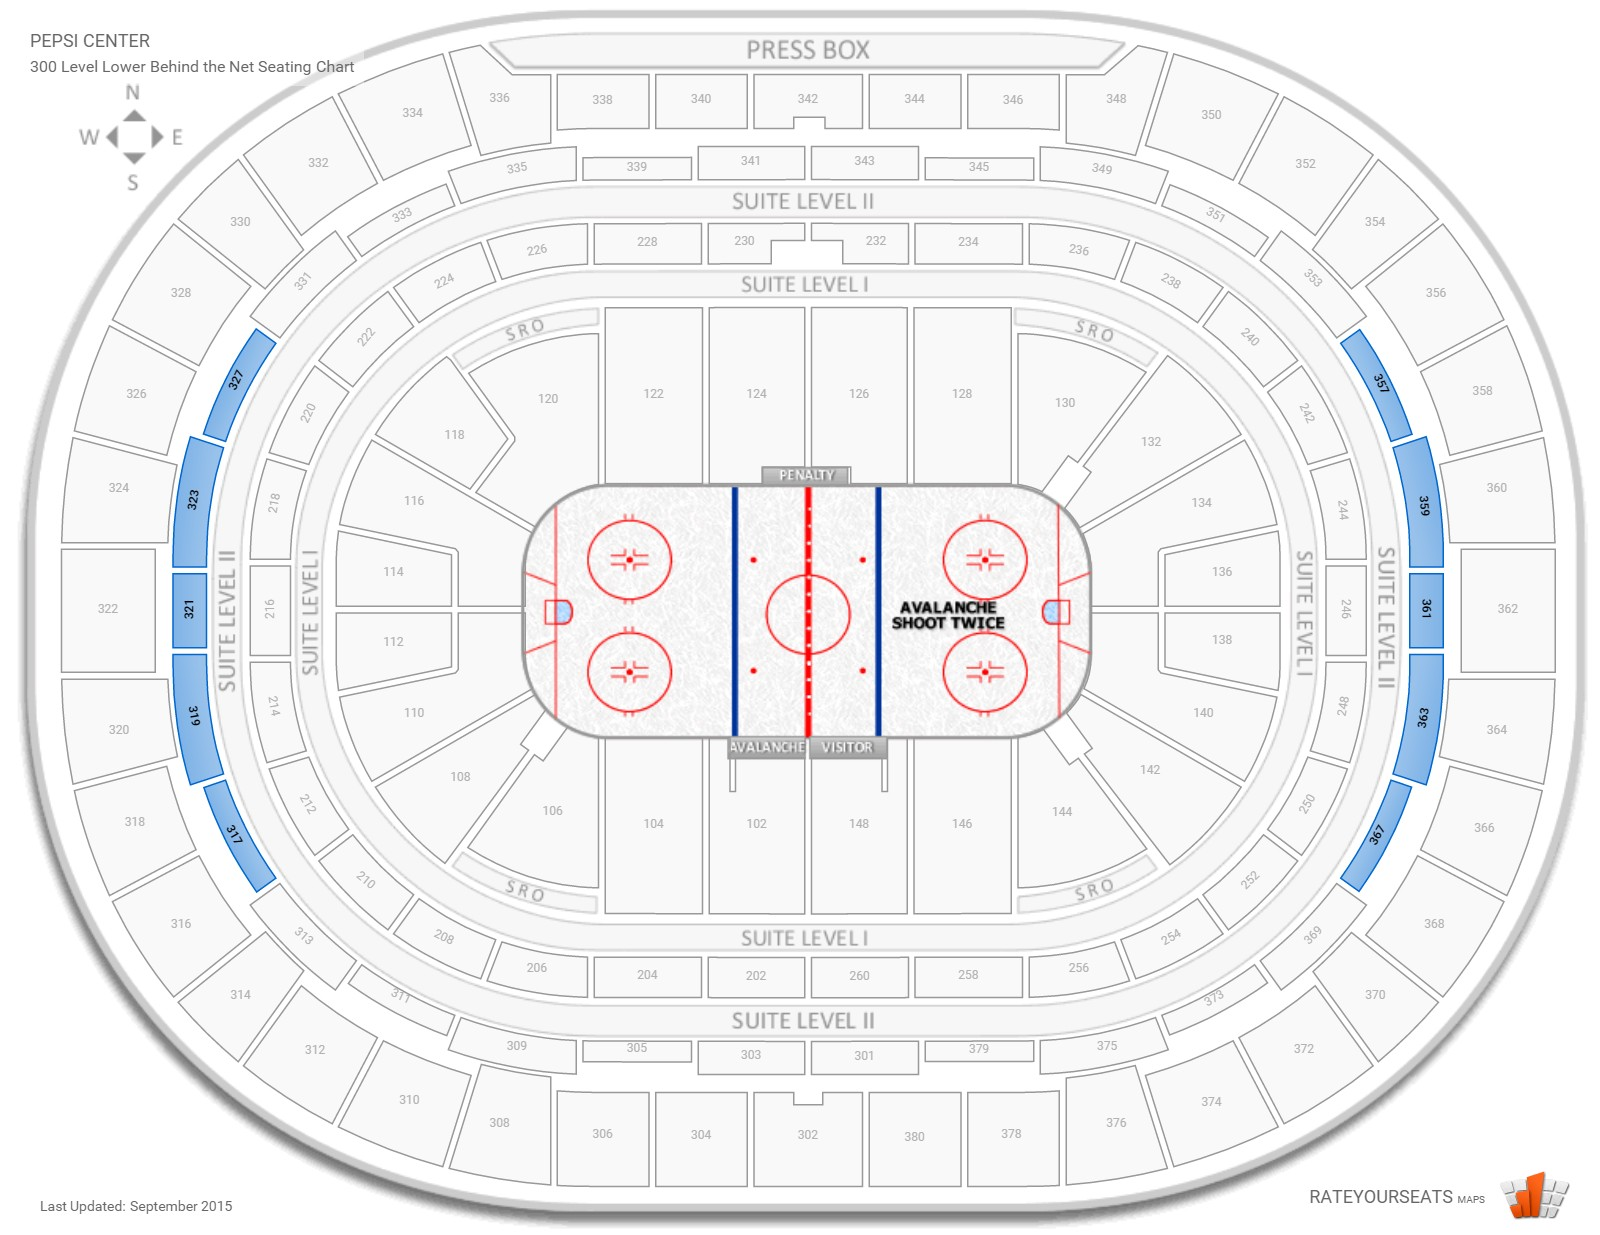 Pepsi Center 300 Level Behind the Net seating chart